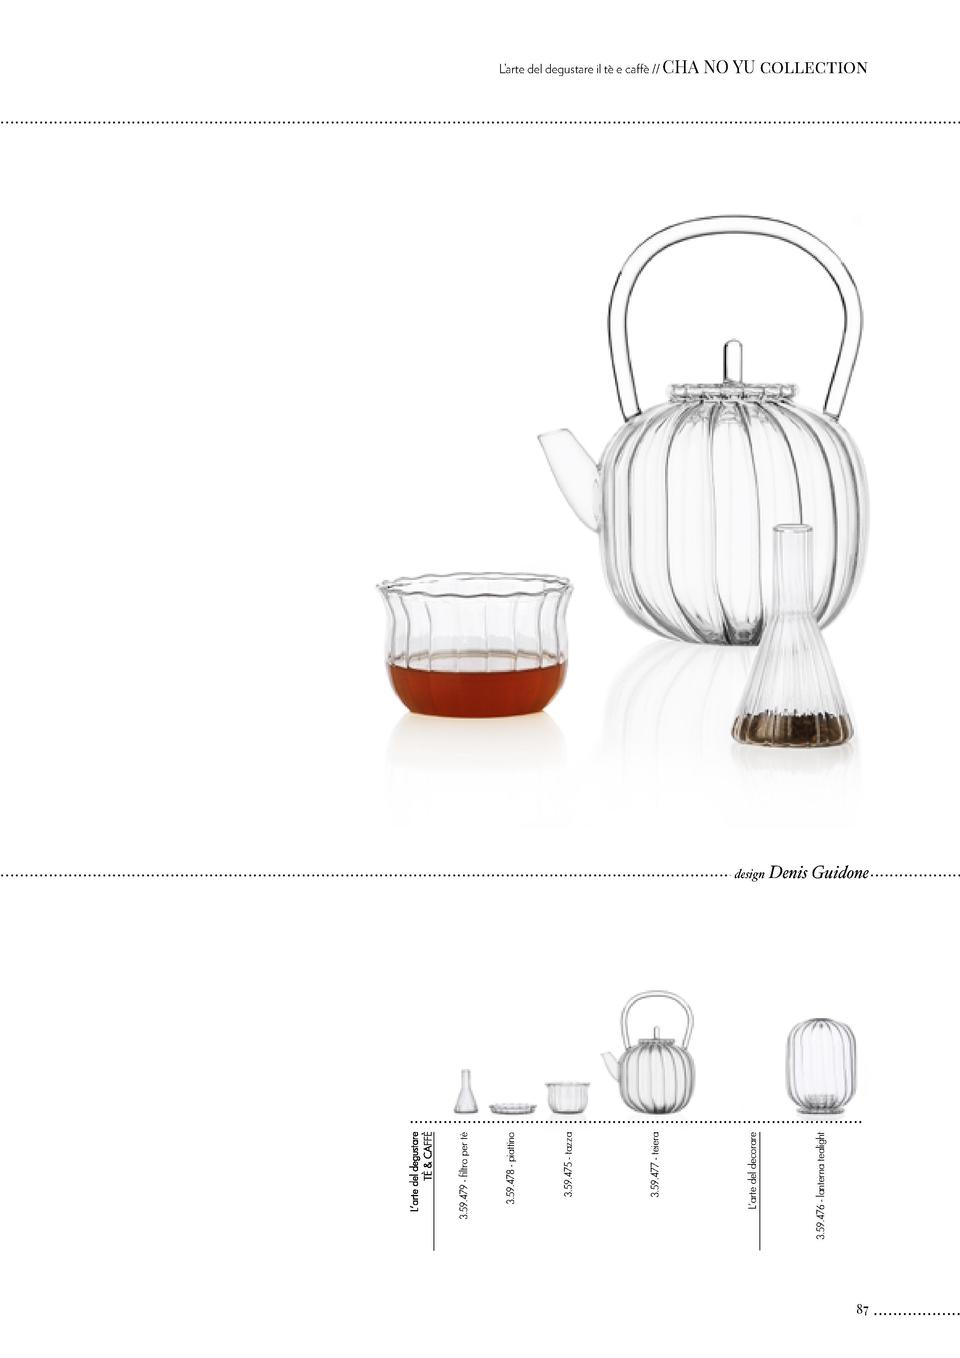 design  Denis Guidone  L   arte del decorare  3.59.476 - lanterna tealight  3.59.477 - teiera  3.59.475 - tazza  3.59.478 ...